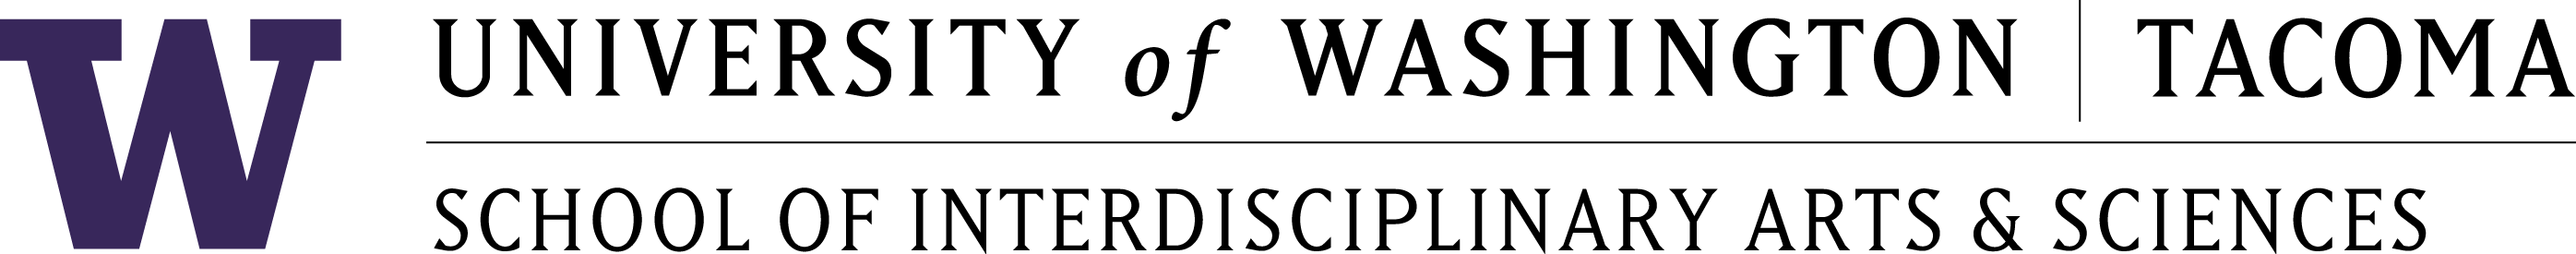 logo of the School of Interdisciplinary Arts and Sciences at the University of Washington Tacoma